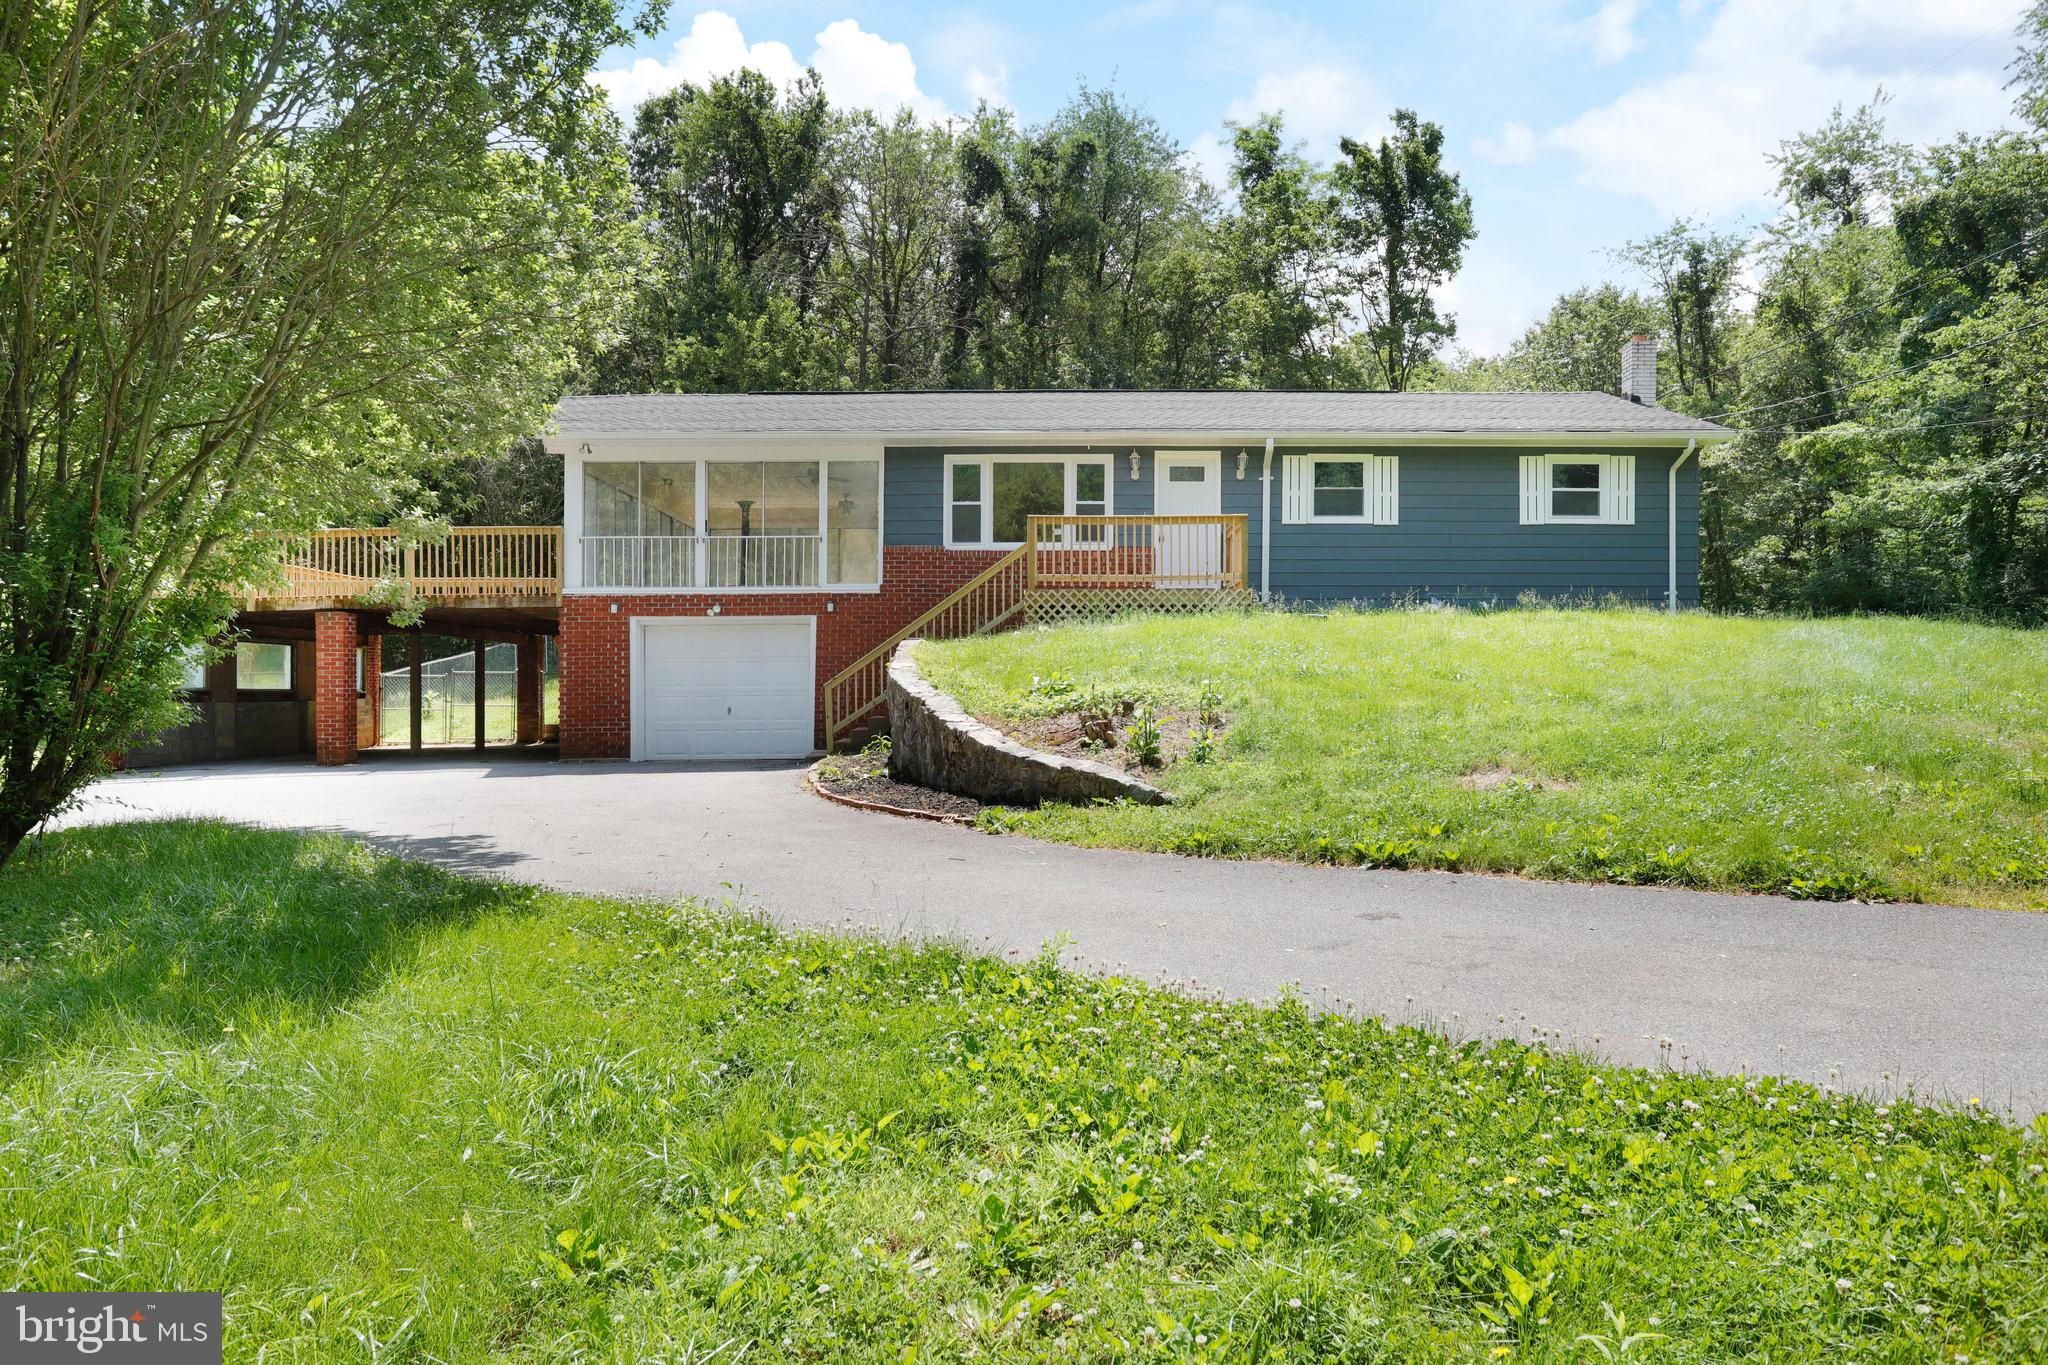 13305 DRAPER ROAD, CLEAR SPRING, MD 21722